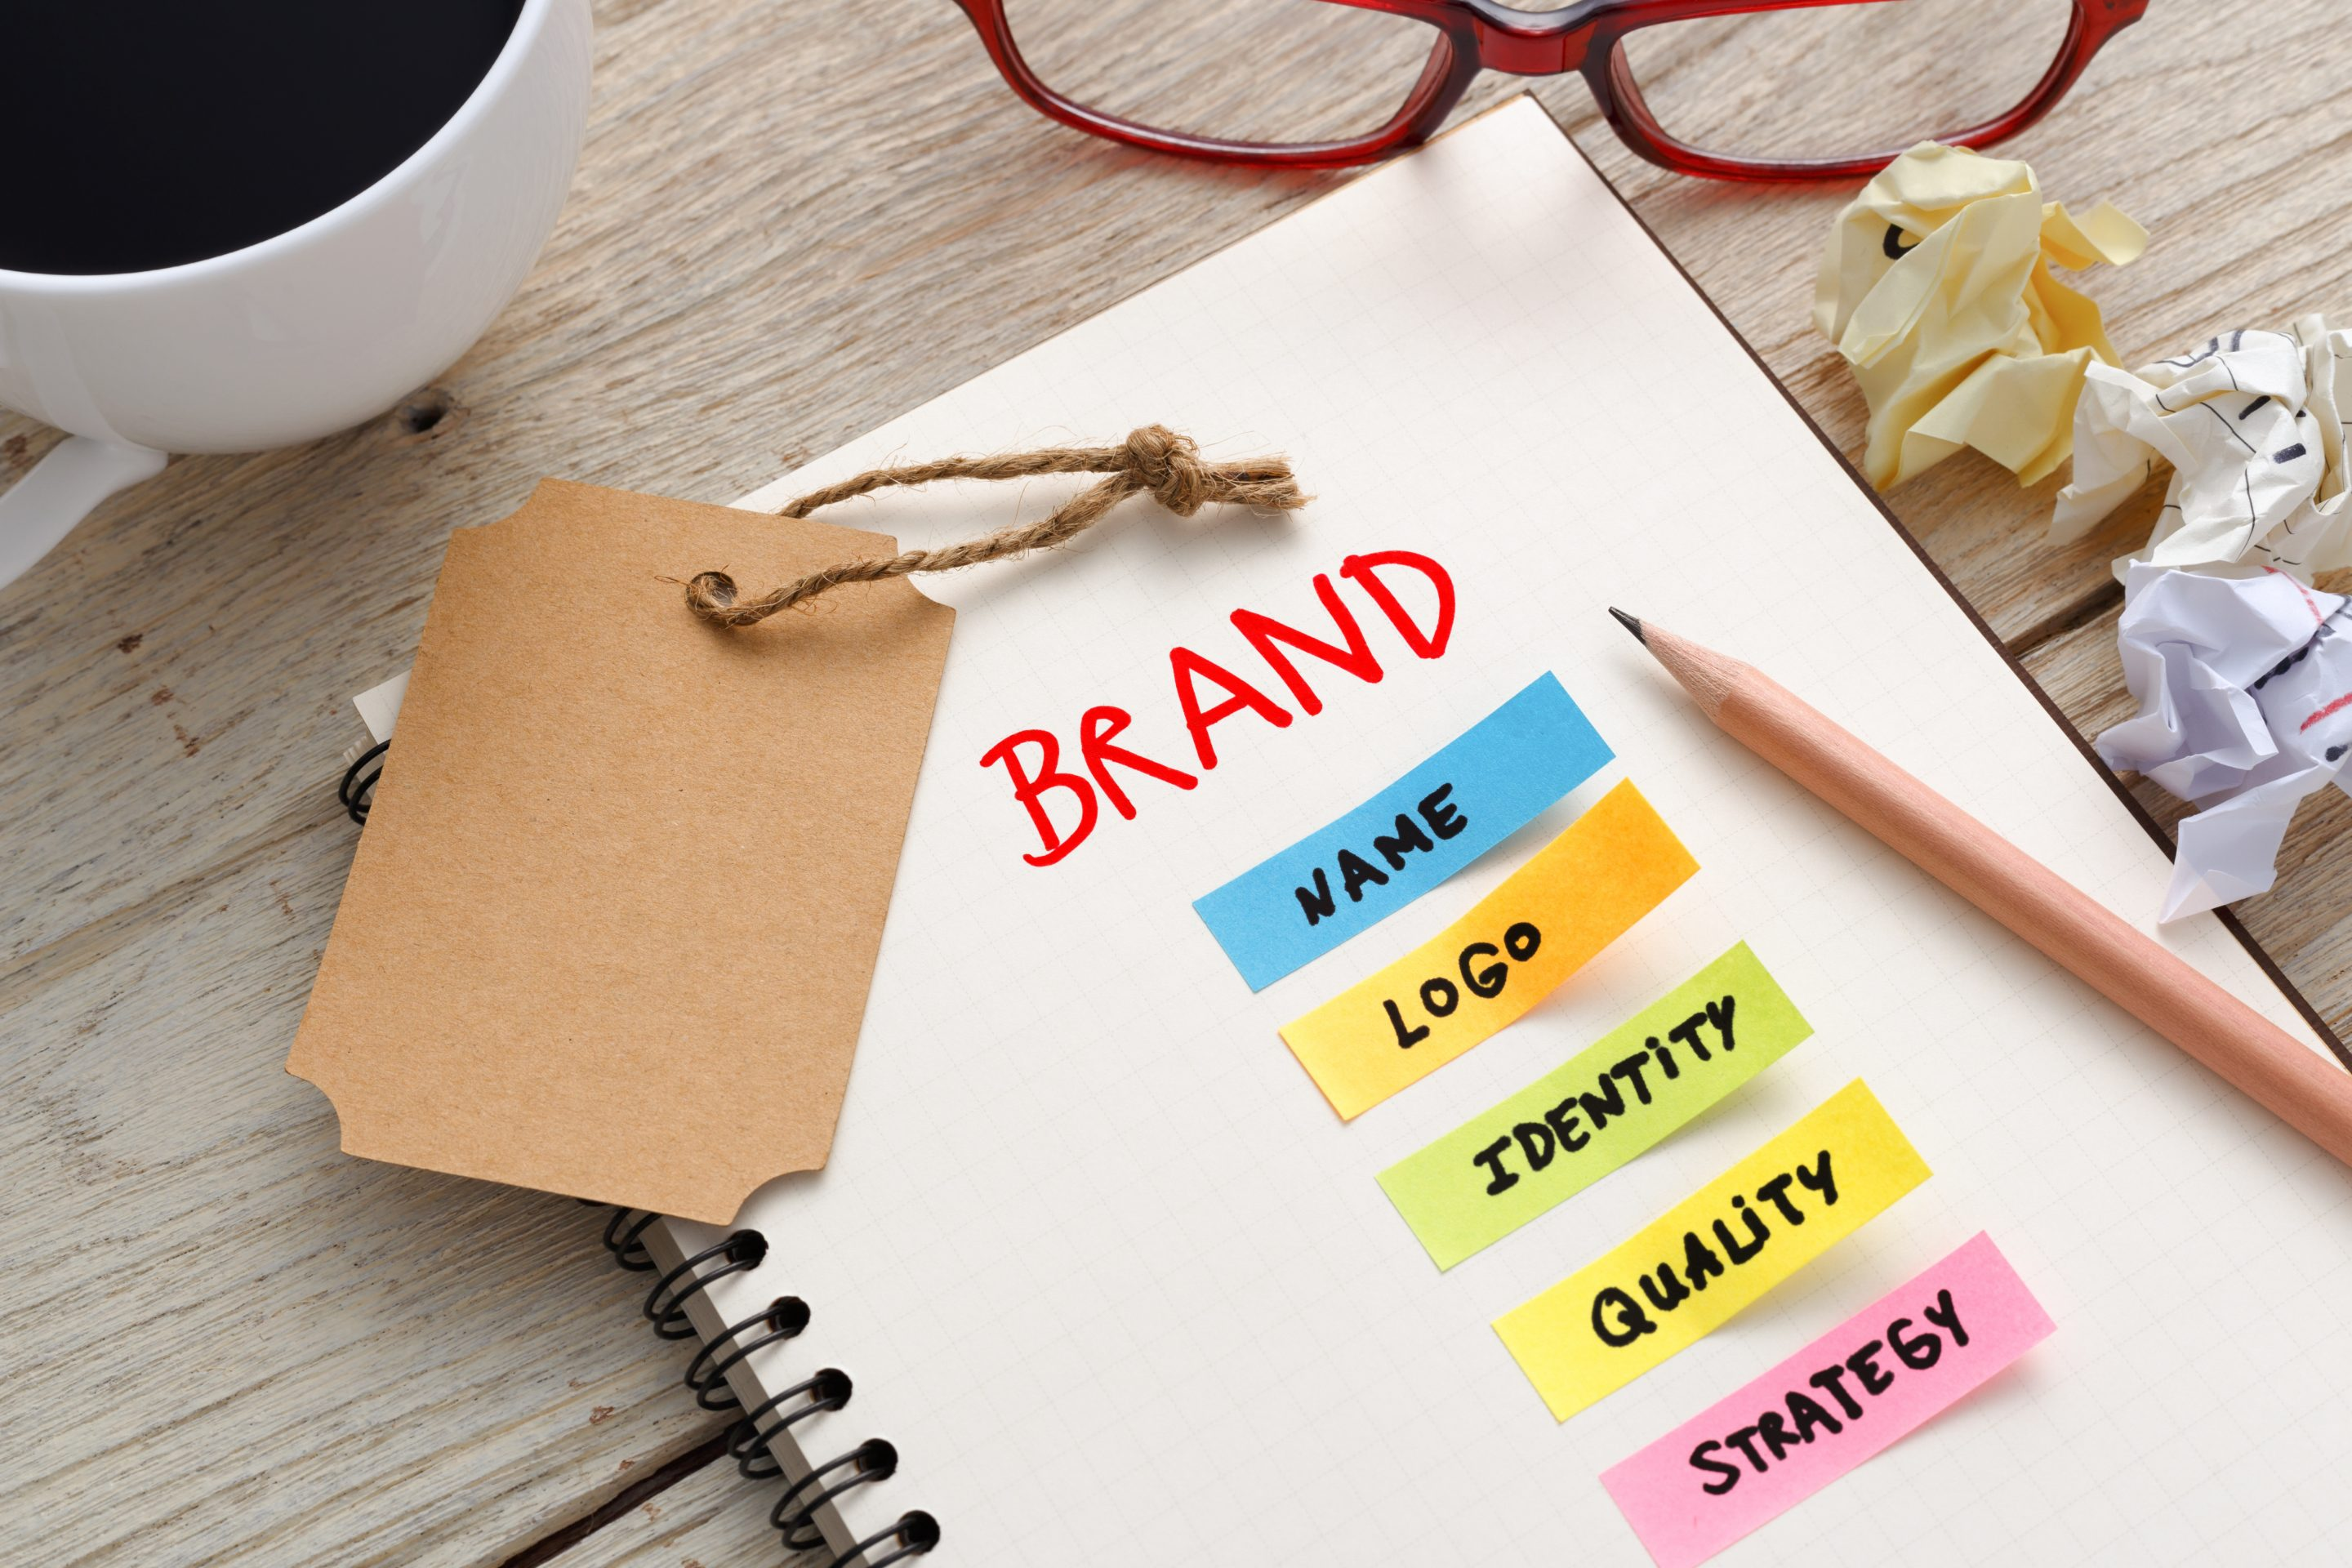 Video: How to Establish Your Brand Identity